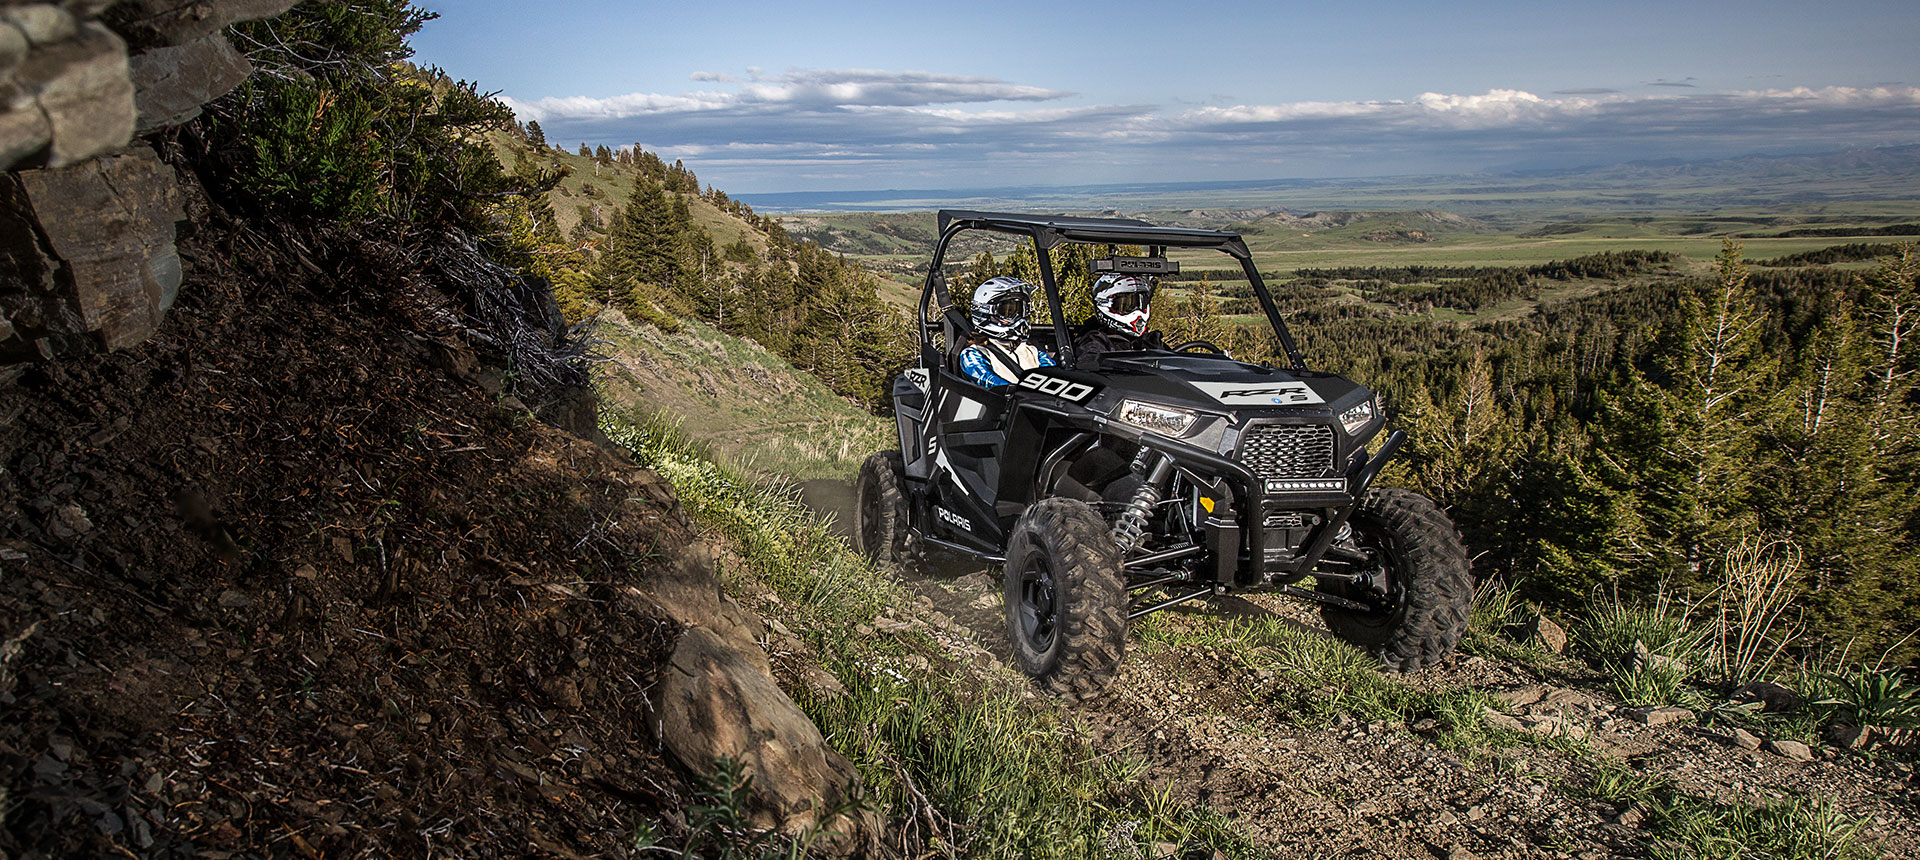 2019 Polaris RZR S 900 EPS in Malone, New York - Photo 4